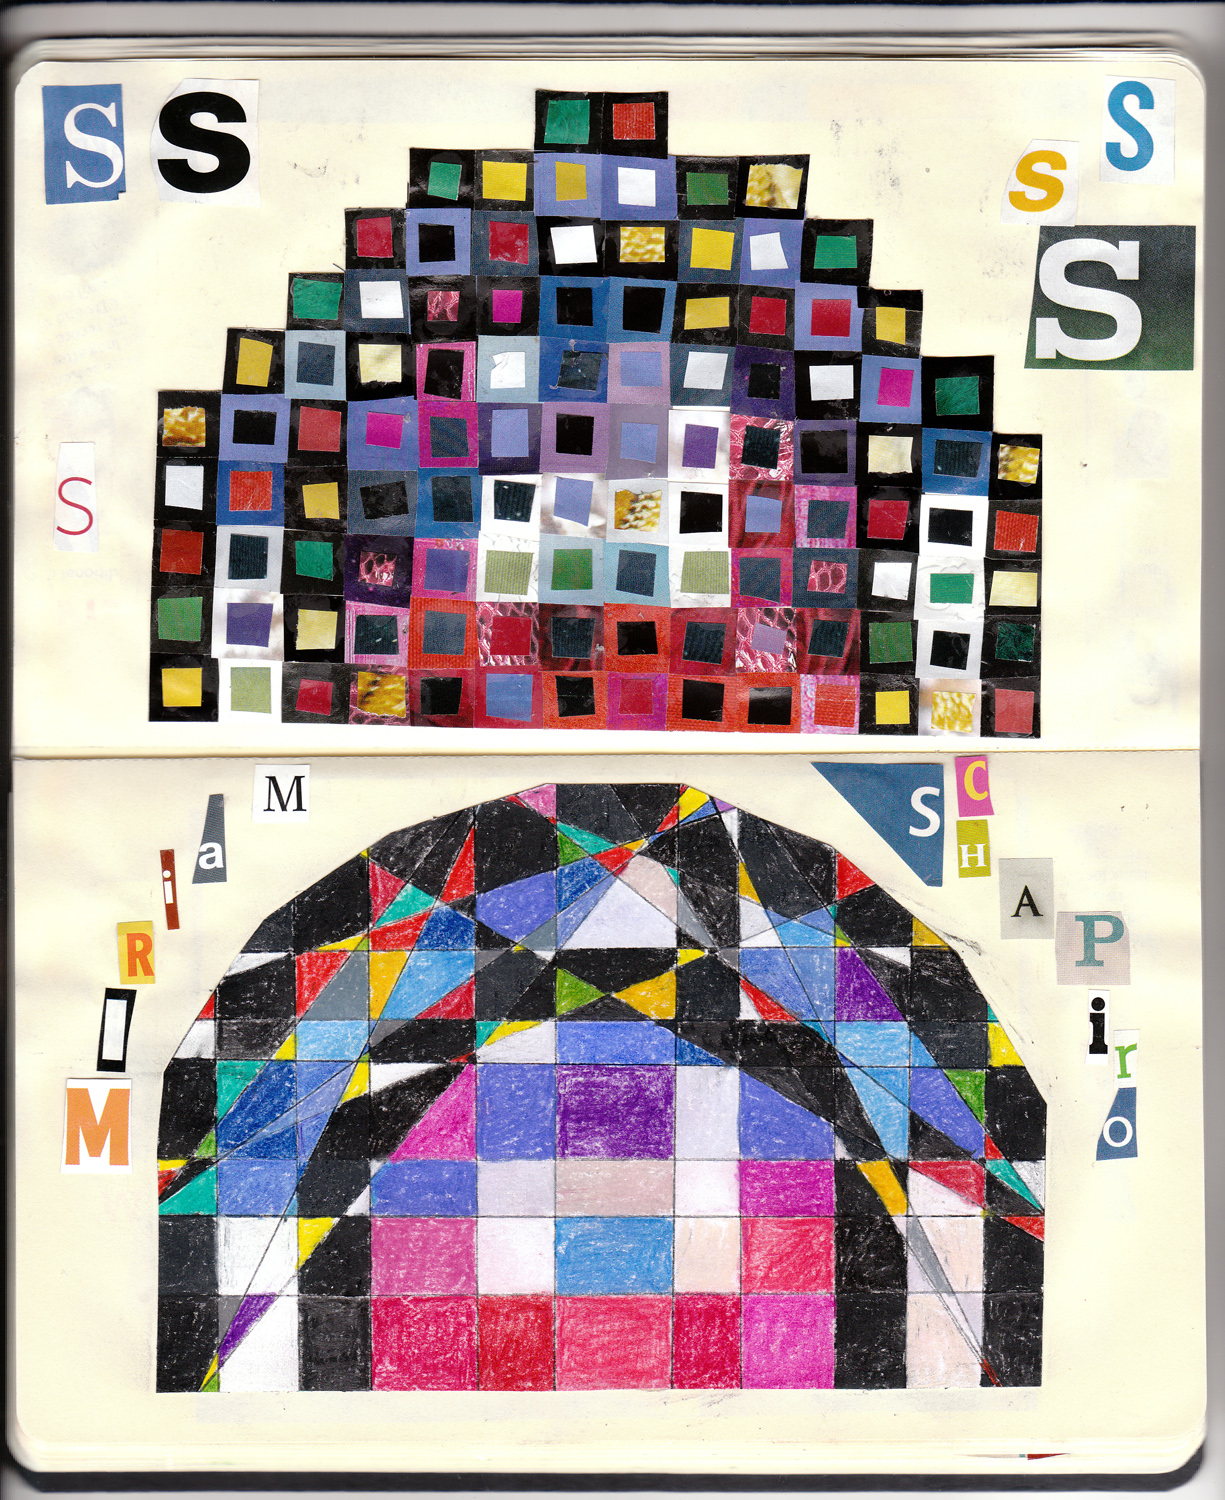 the life achievement and influence of miriam schapiro Size includes the frame miriam schapiro (or shapiro) (november 15, 1923 - june 20, 2015) was a canadian-born artist based in america she was a painter, sculptor and printmaker she was a pioneer of feminist art she was also considered a leader of the pattern and decoration art movement.